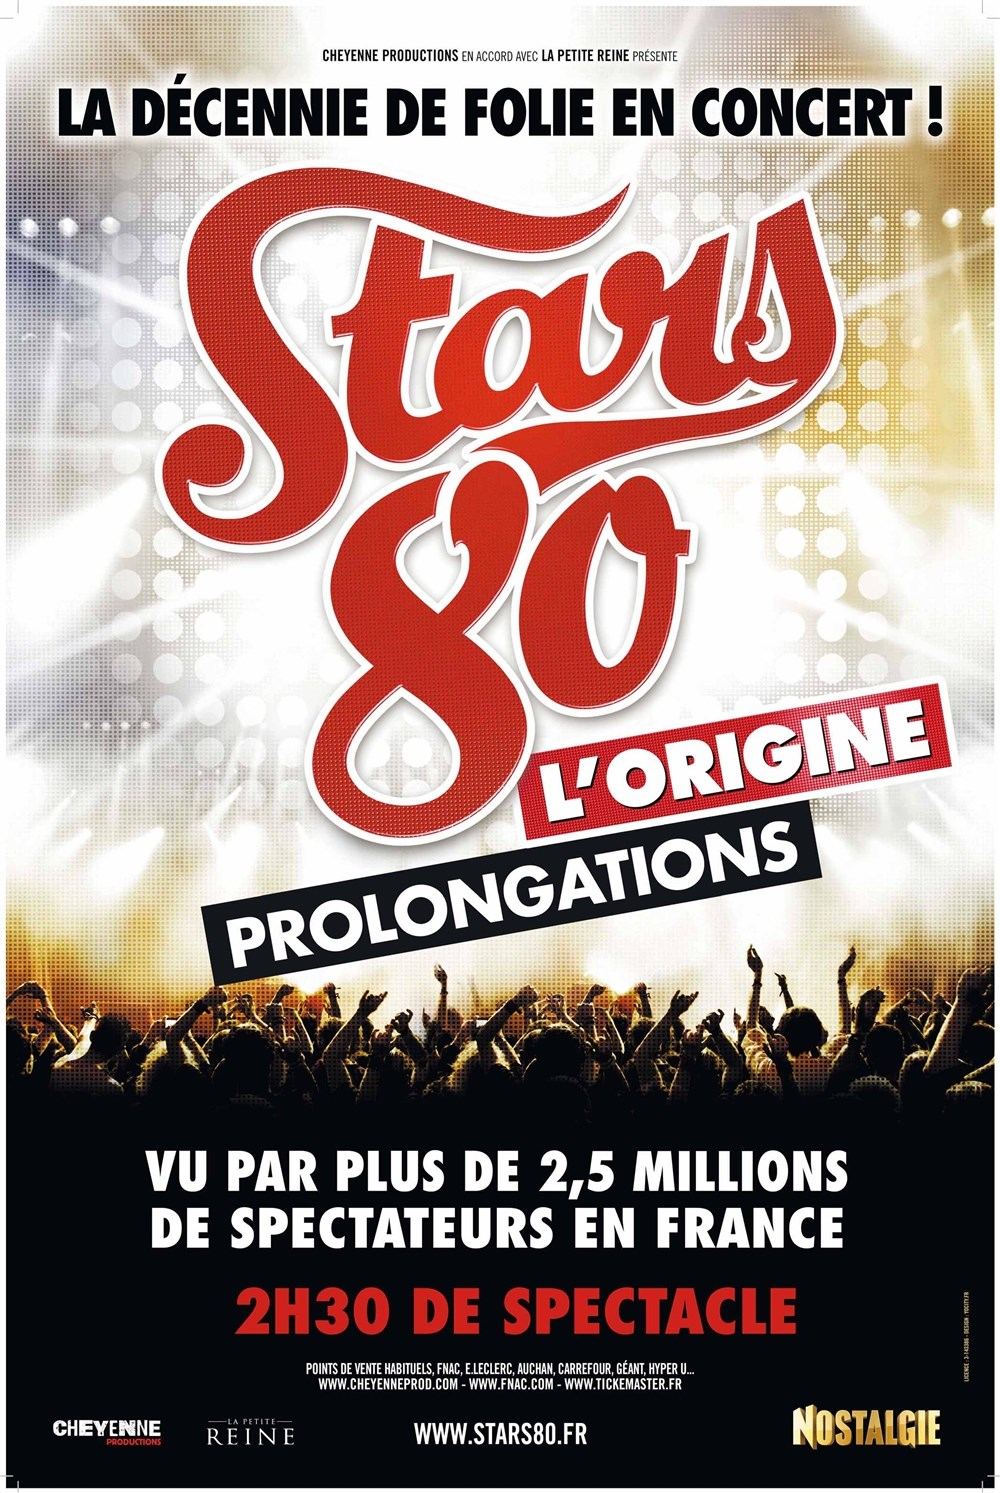 Stars 80 Prolongations Orléans